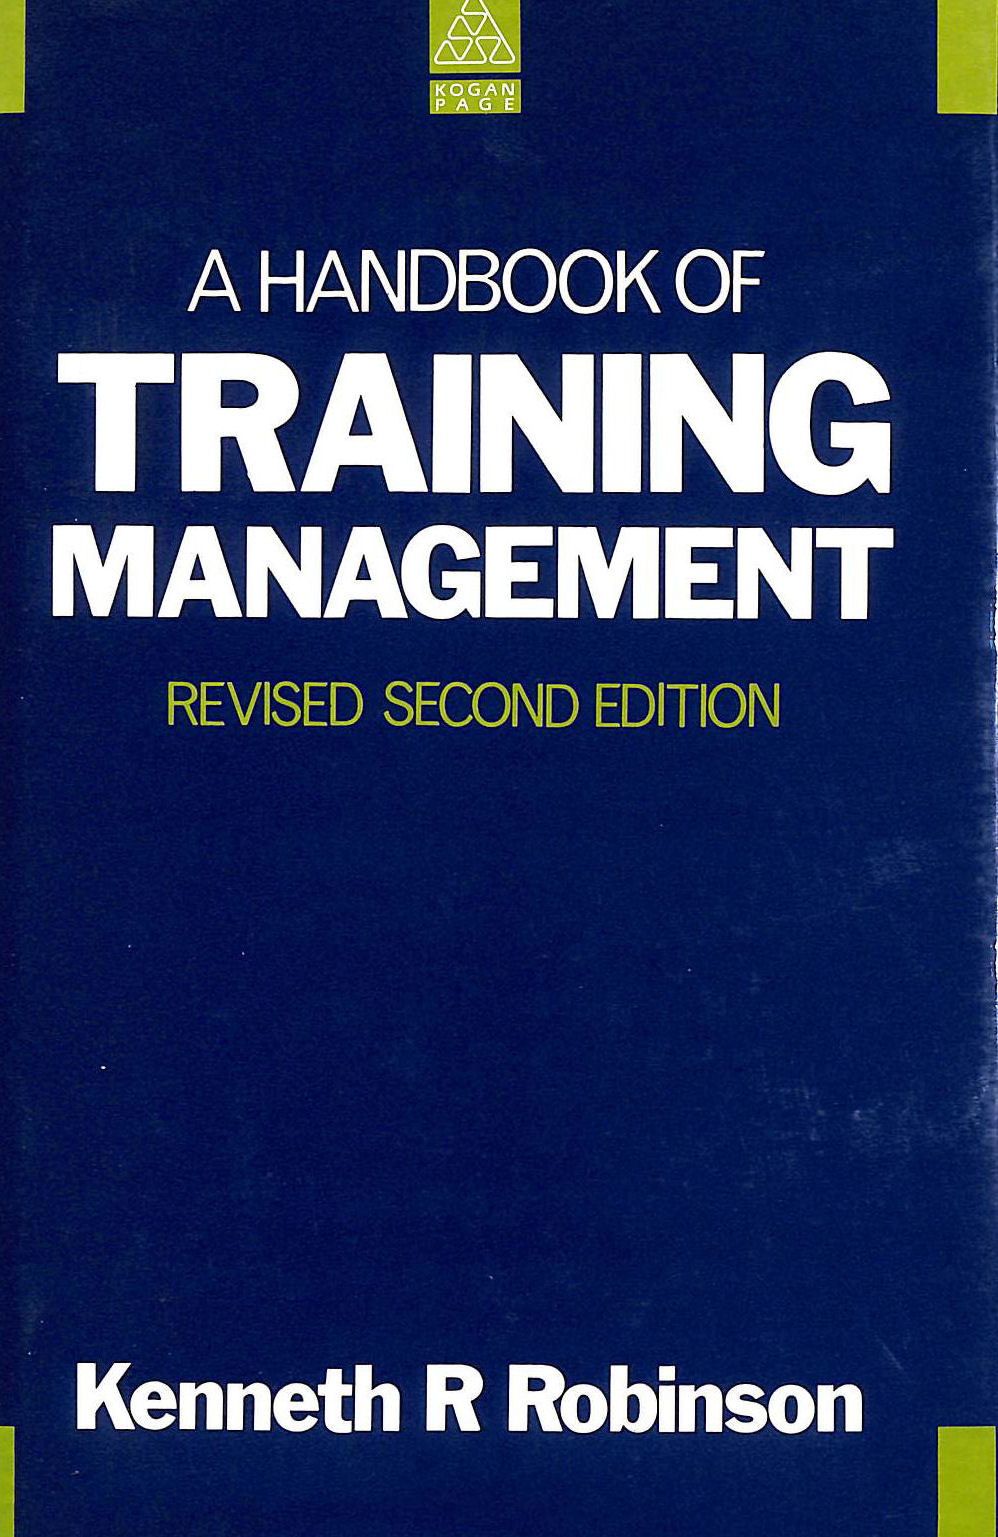 Image for A Handbook of Training Management